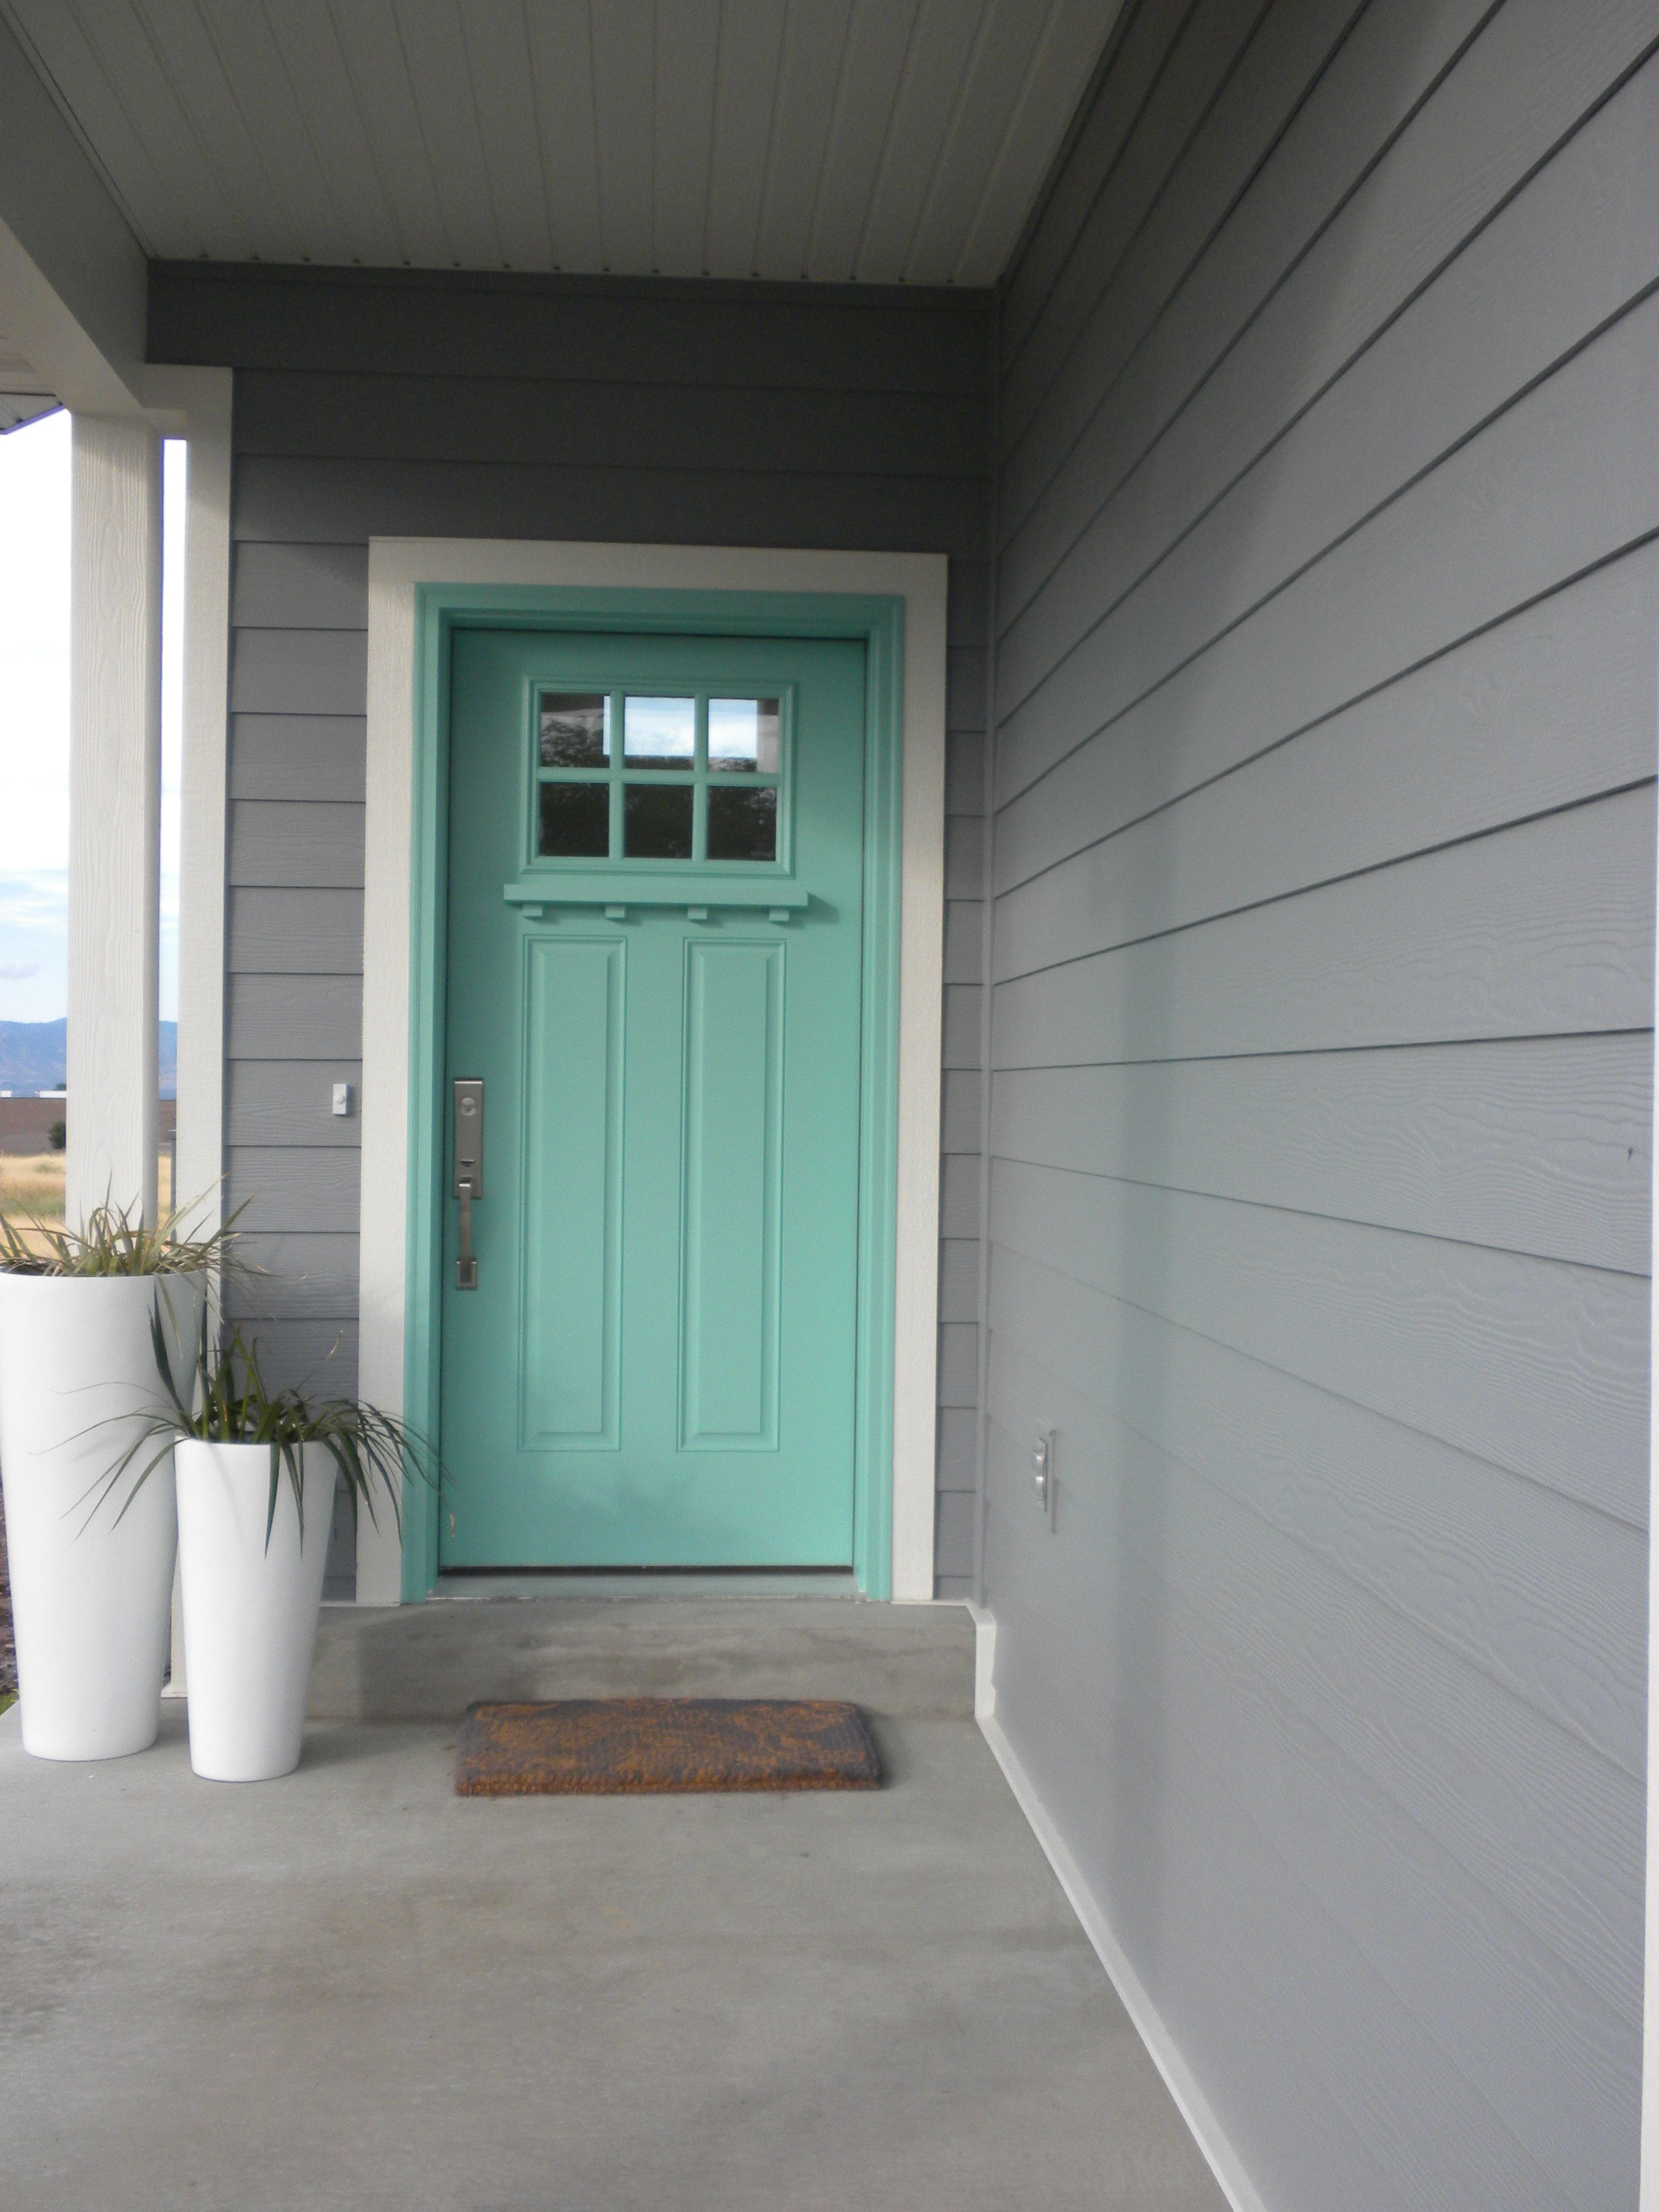 When I Have My Own House I Shall Have An Aqua Front Door And Gray Paint Exterior House Paint Exterior Aqua Front Doors Exterior Gray Paint